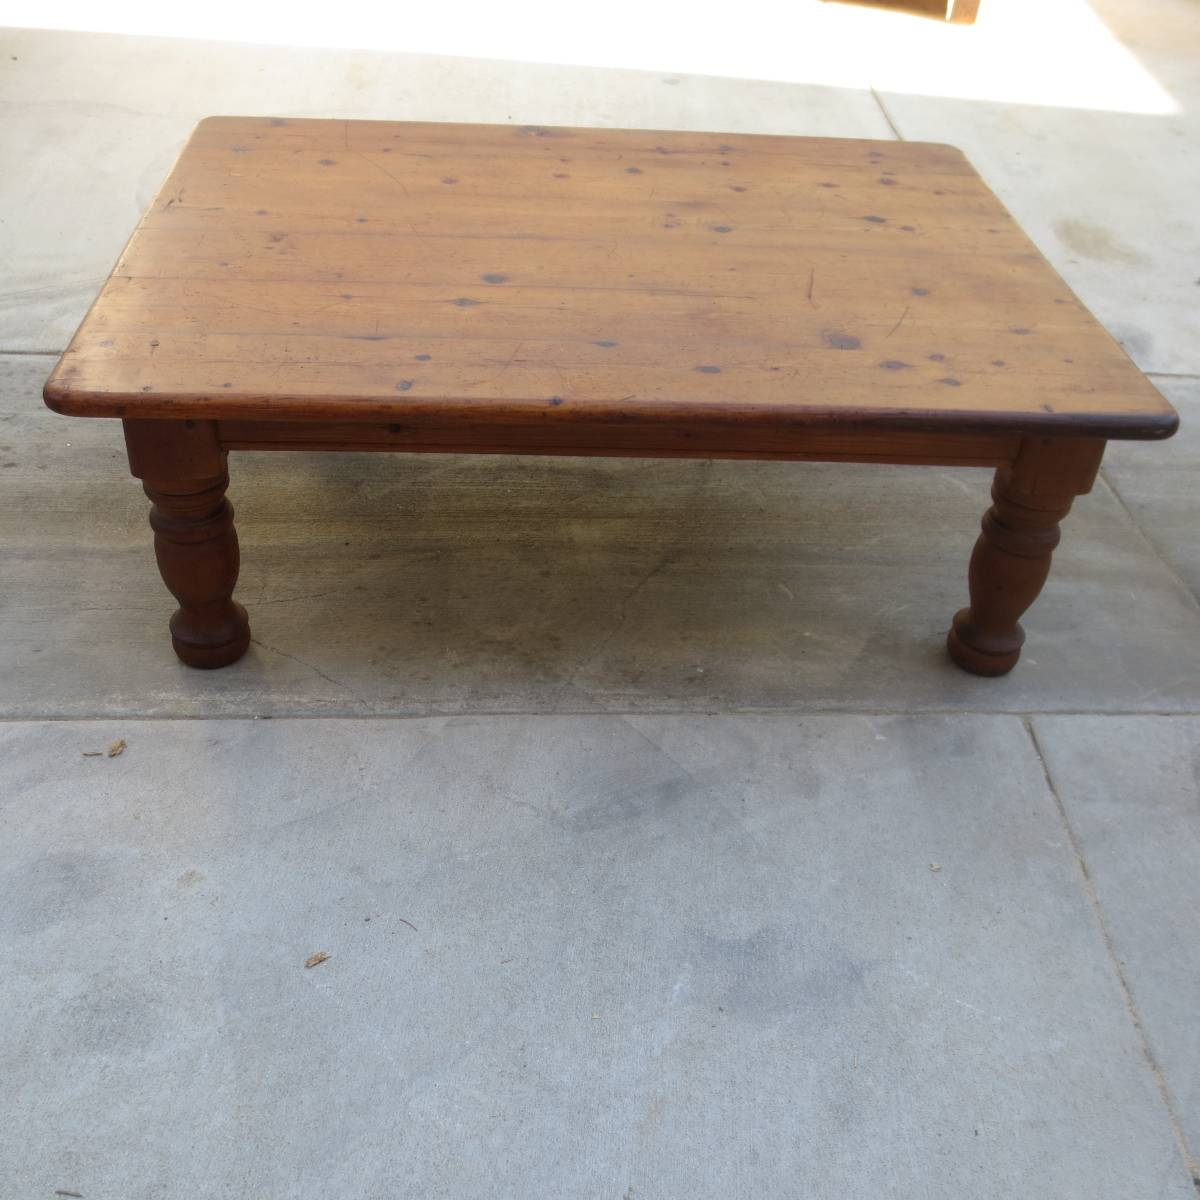 Antique Coffee Tables, Antique Furniture, Antique Coffeetables with Antique Pine Coffee Tables (Image 6 of 30)